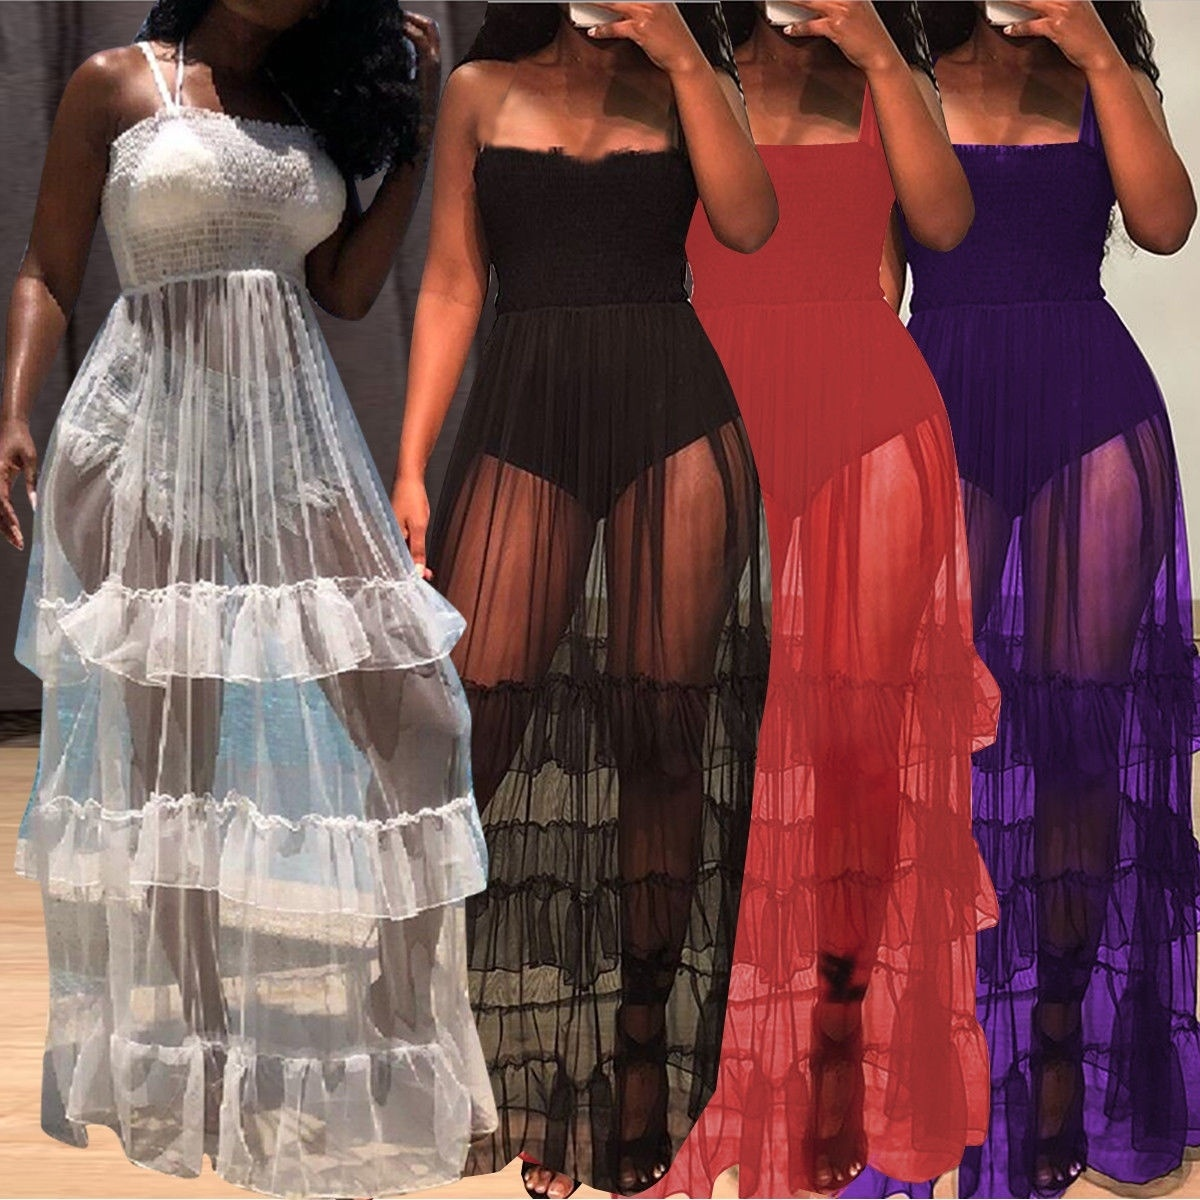 2019 Summer Dress Black Purple Sheer Mesh Maxi Dress Womens Sleeveless Sexy Beach Dresses Chiffon Cascading Ruffle